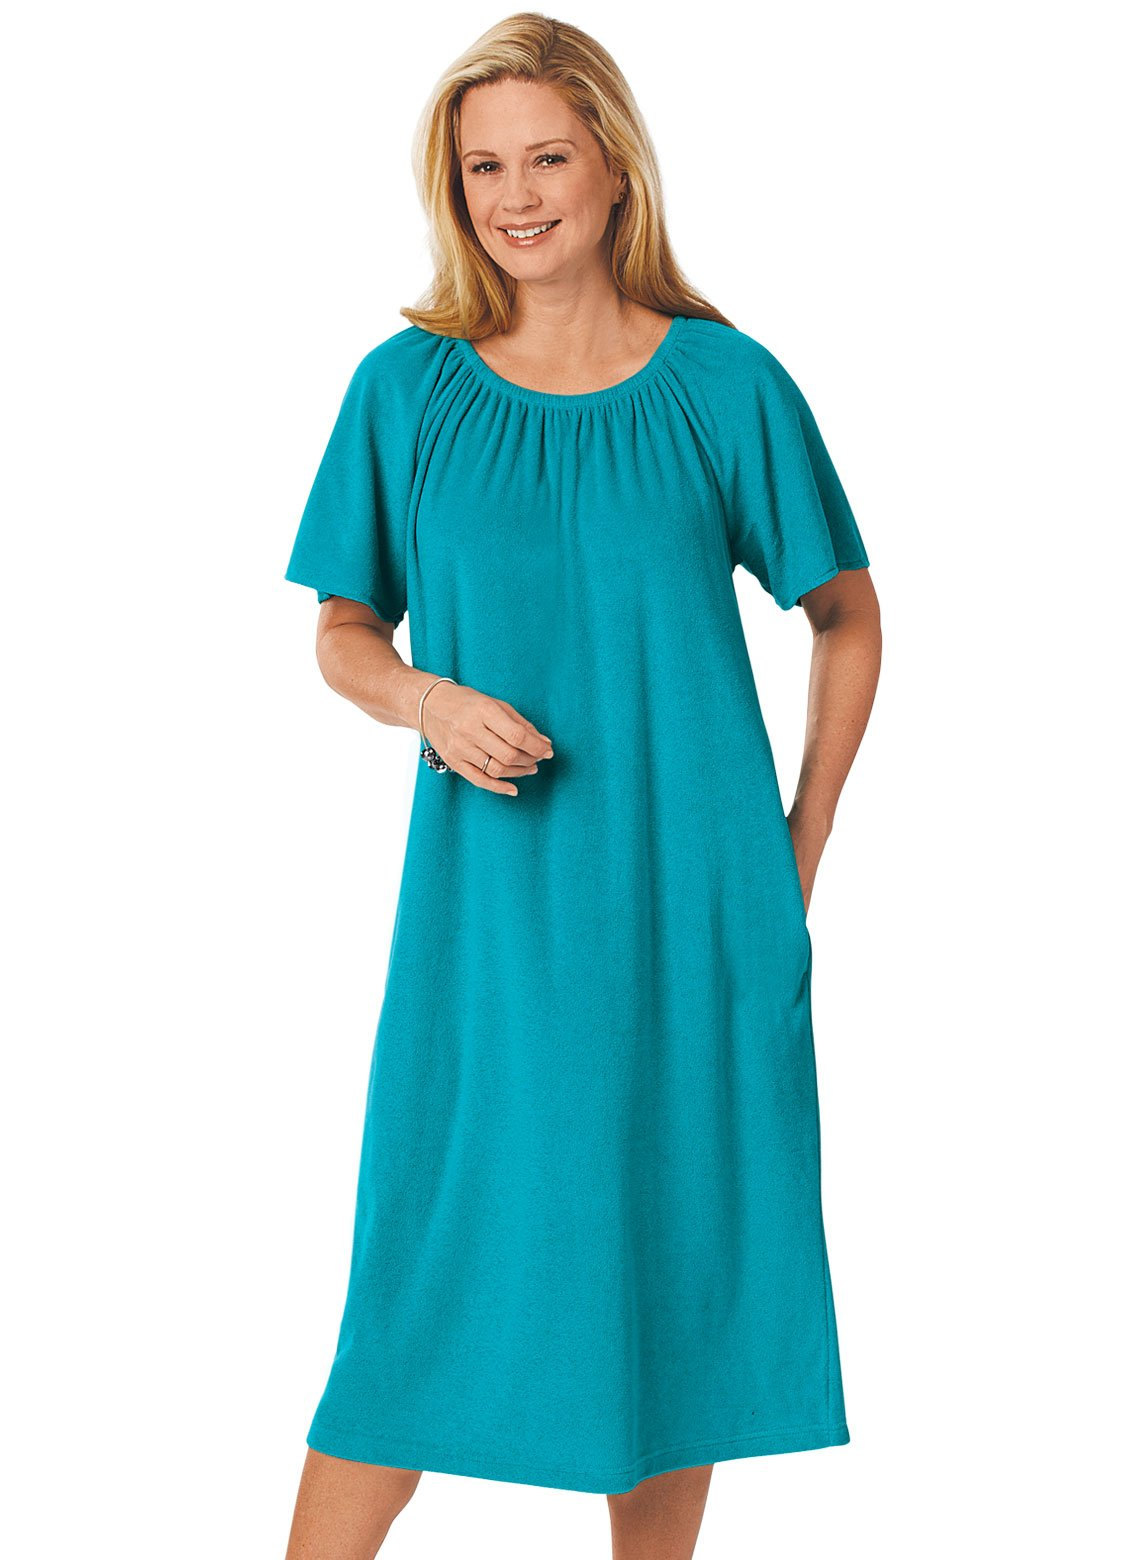 Carol Wright Gifts Terry Pop-Over Dress, Jade, Size Extra Large (3X)